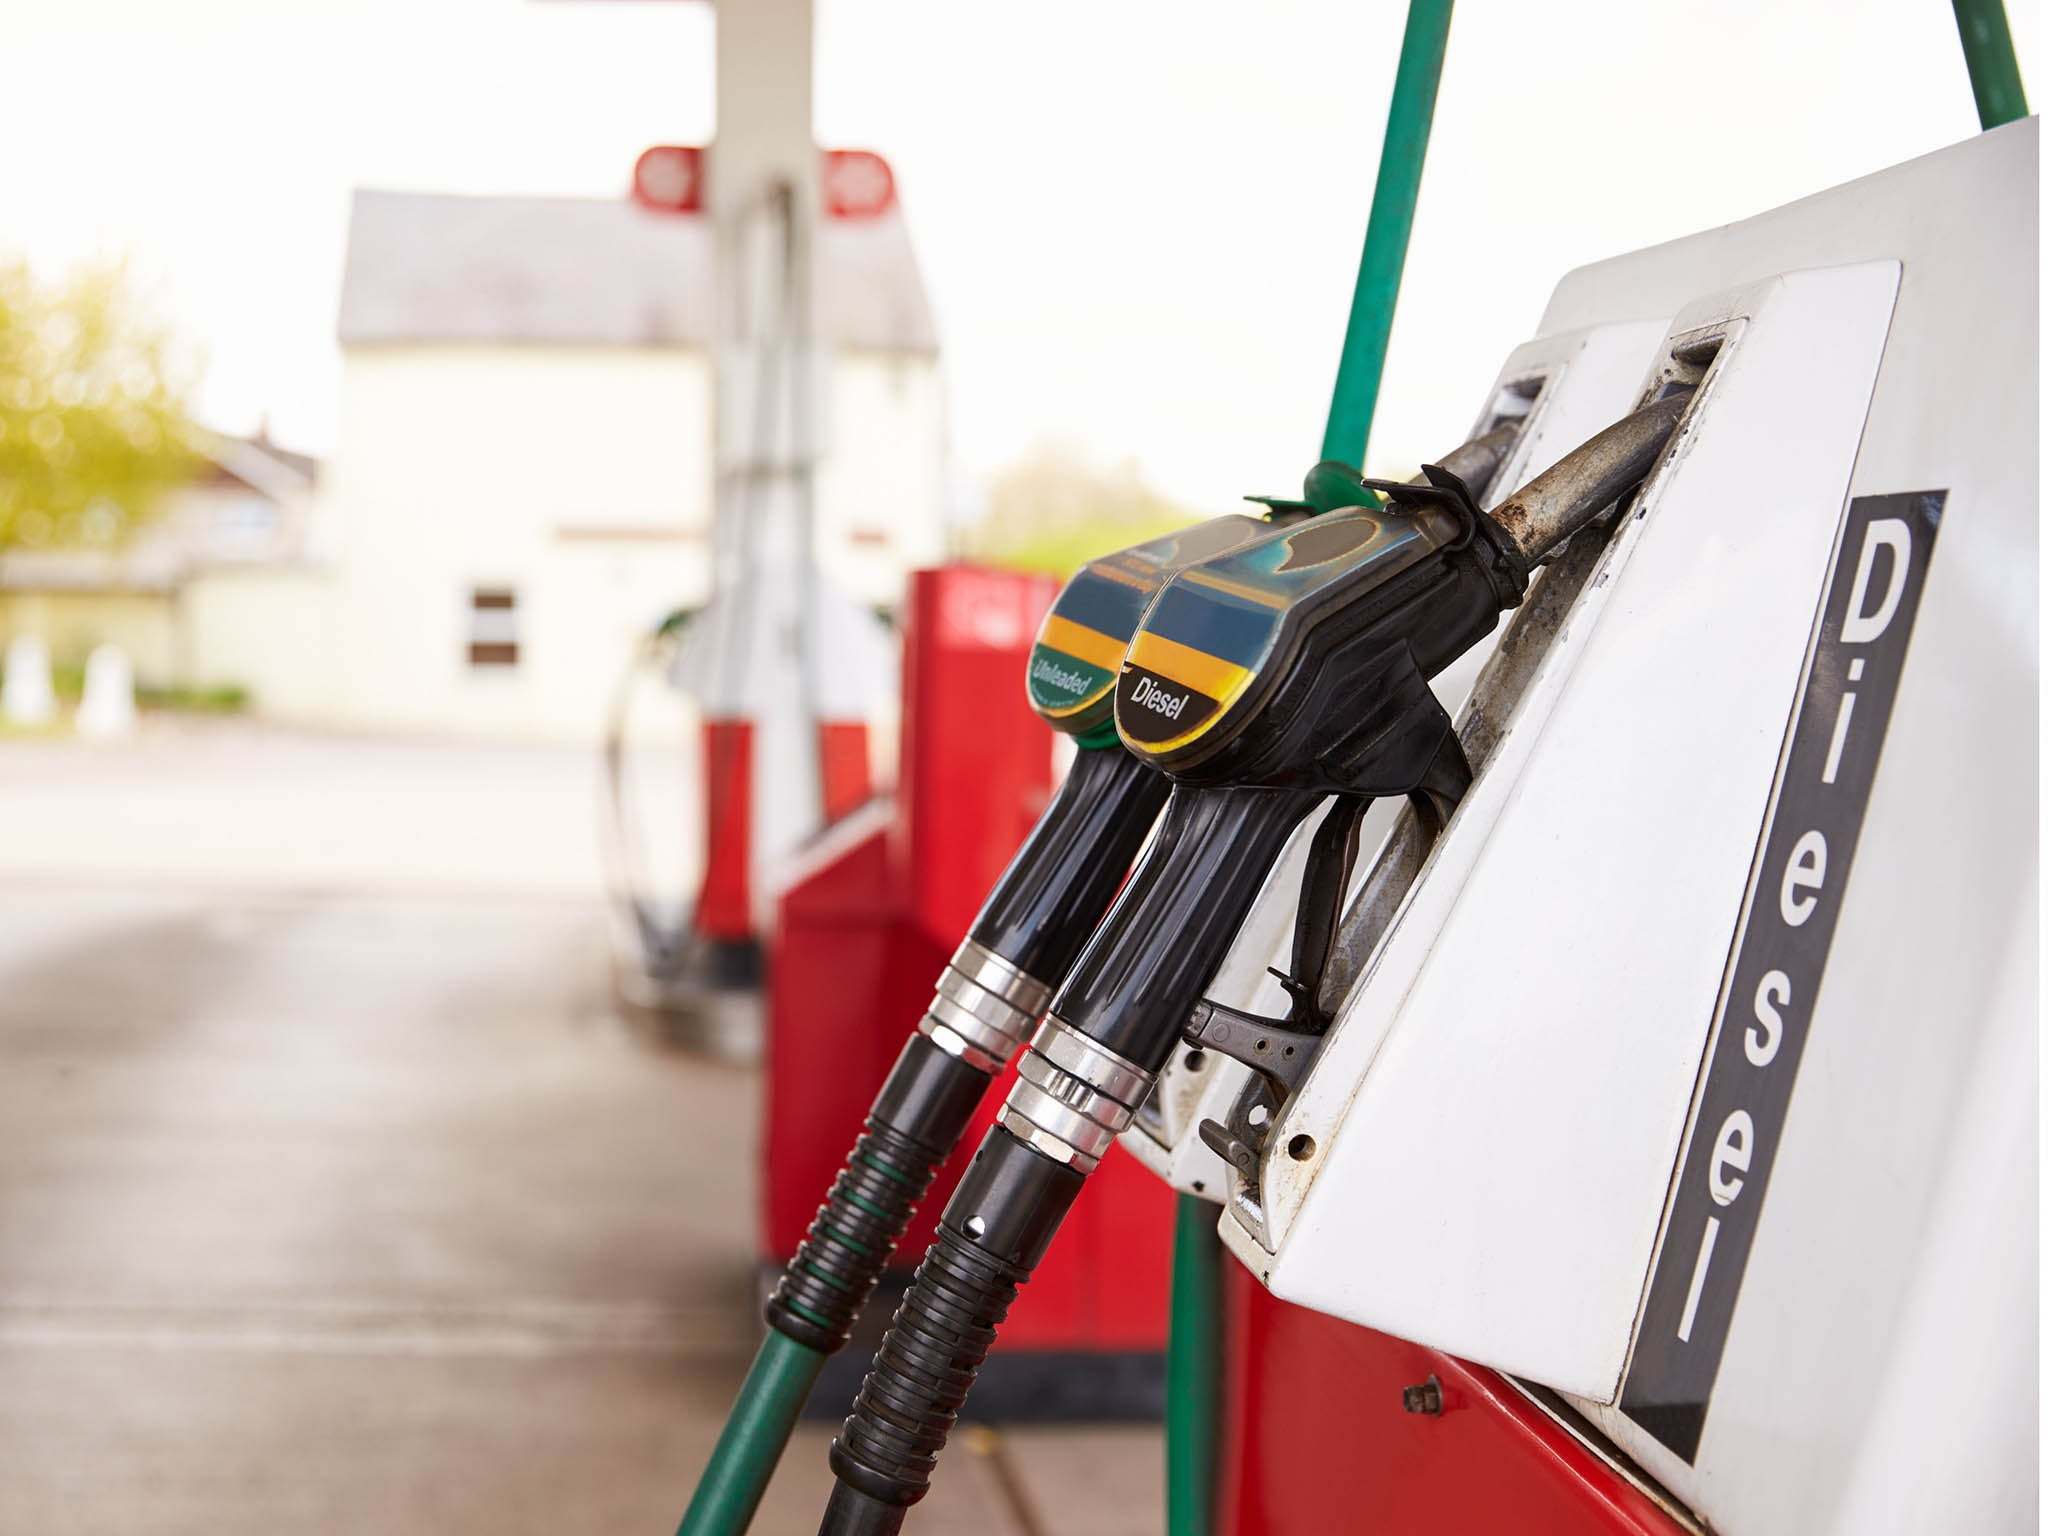 Fuel Pumps To Get Cigarette Packet Style Climate Change Warnings